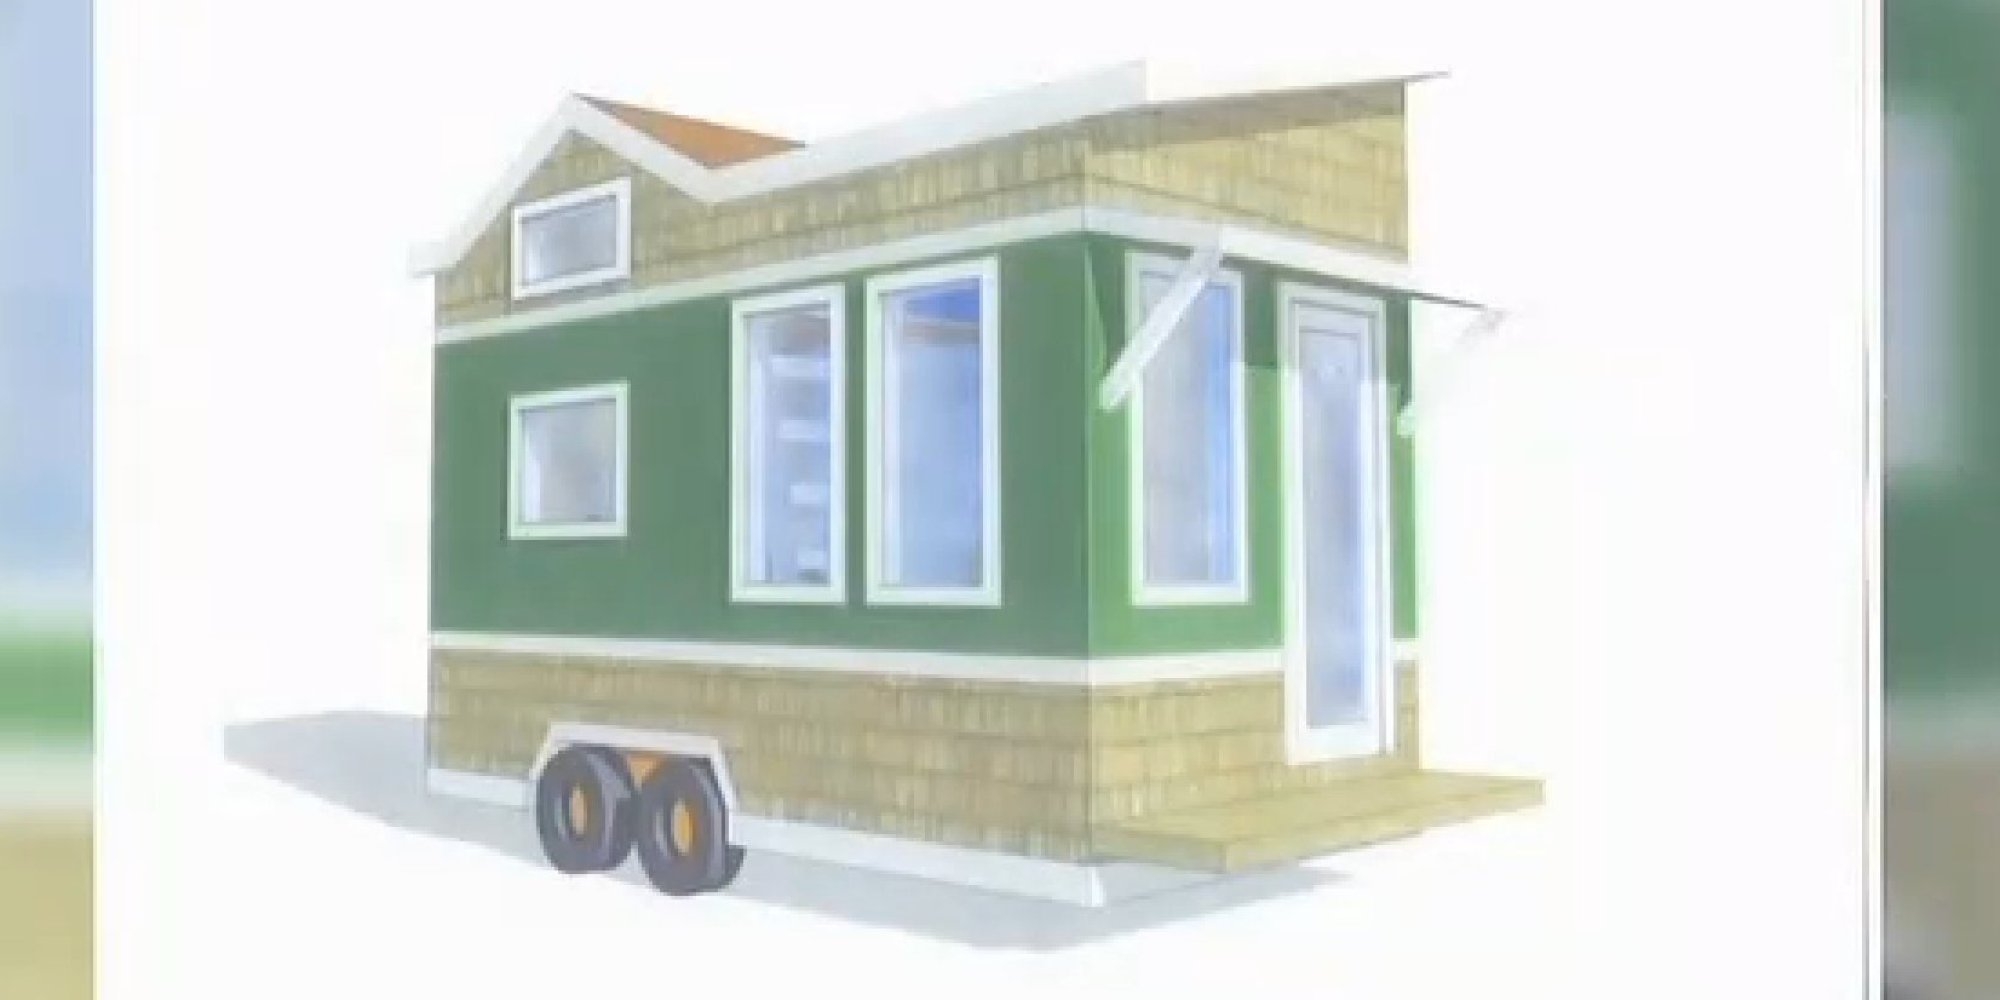 Montana Community Moves Forward With Plans For A Tiny: Tiny Homes For Homeless People Built By The Homeless Could